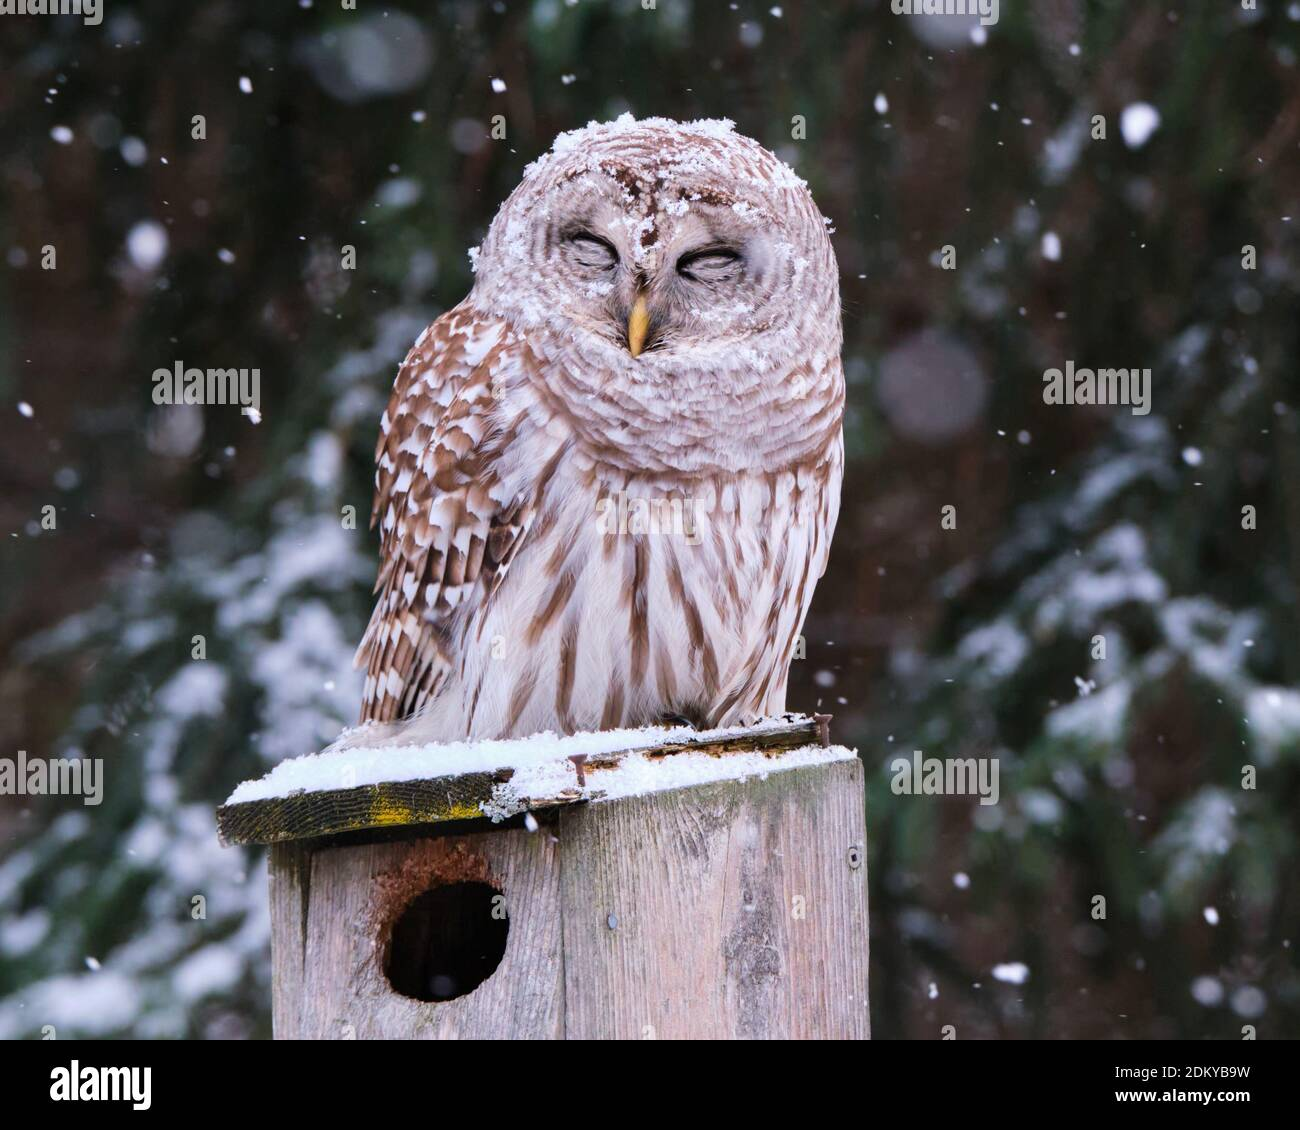 barred-owl-strix-varia-with-eyes-closed-sitting-on-a-wooden-bird-house-as-a-light-snow-flakes-starts-falling-on-it-2DKYB9W.jpg